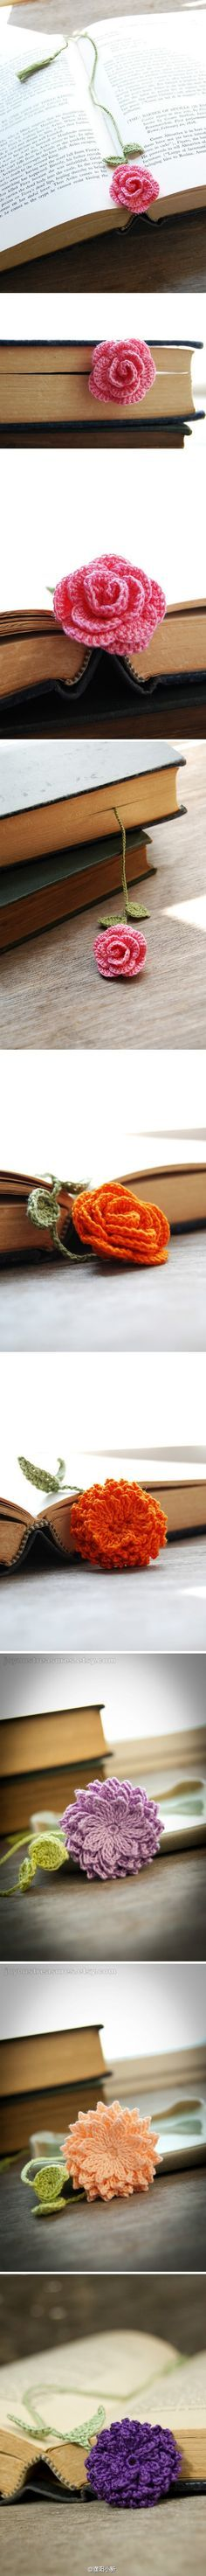 pretty bookmarks - crochet flowers